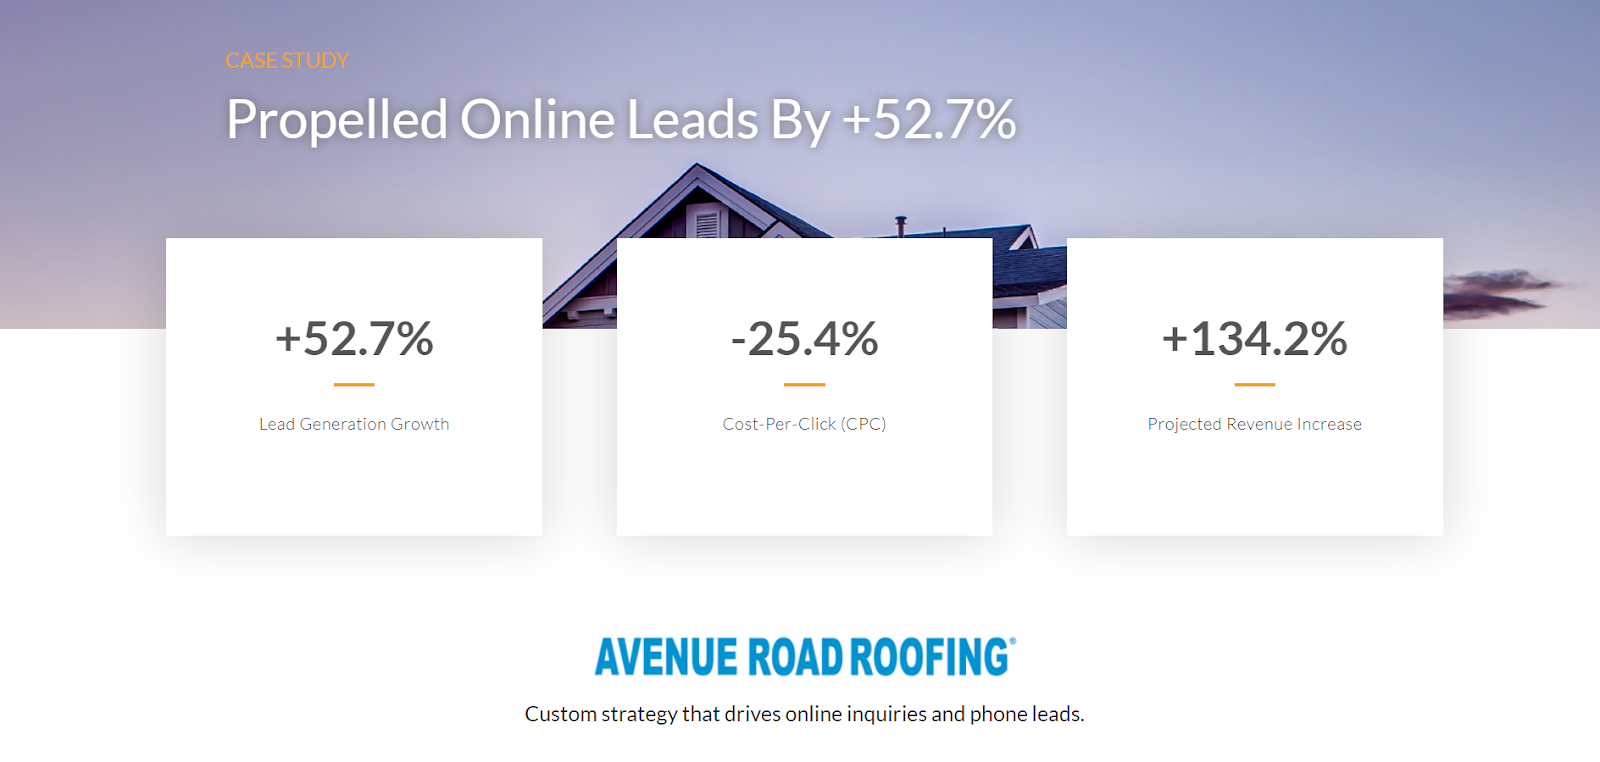 Case study of our work to improve lead generation and revenue for Avenue Road Roofing